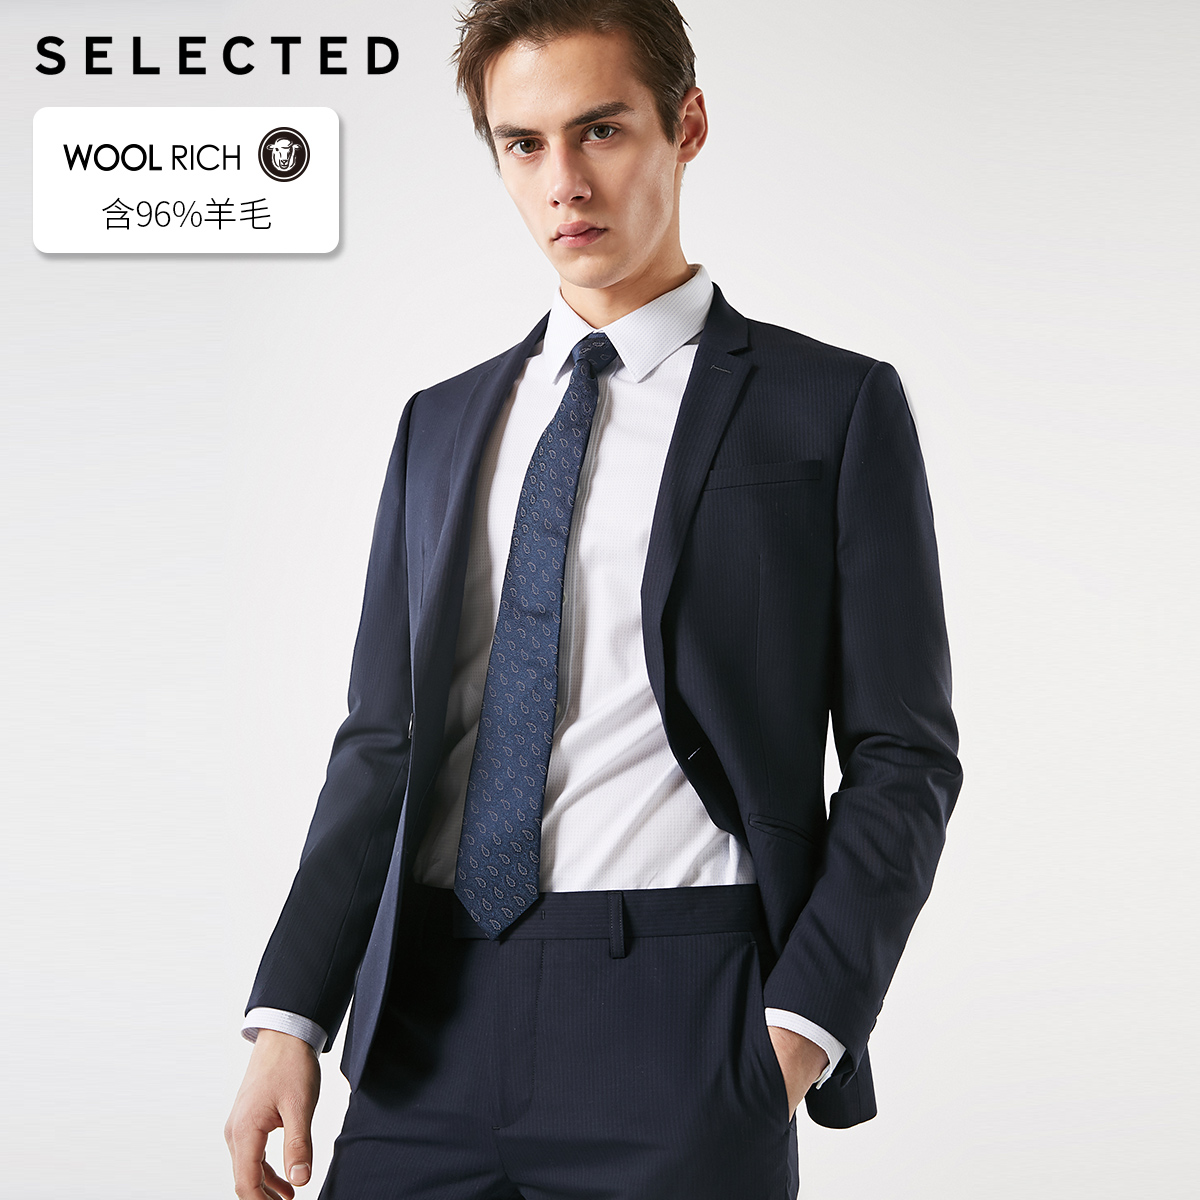 SELECTED Men's Slim-Fit Woolen Business Blazer Striped Notched Collar Jacket Clothes T   41915Y510